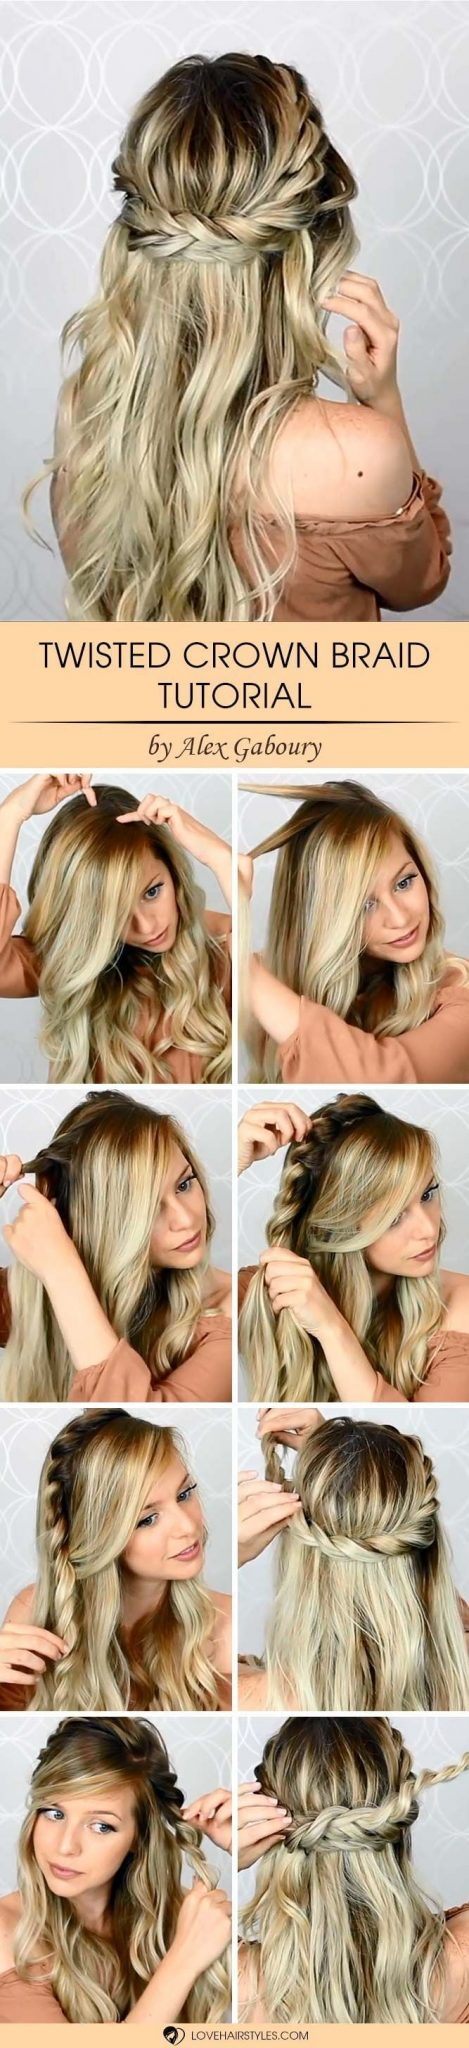 Twisted Crown Braid Tutorial ★ See more: lovehairstyles.co… Source by lightningbugsNL   …